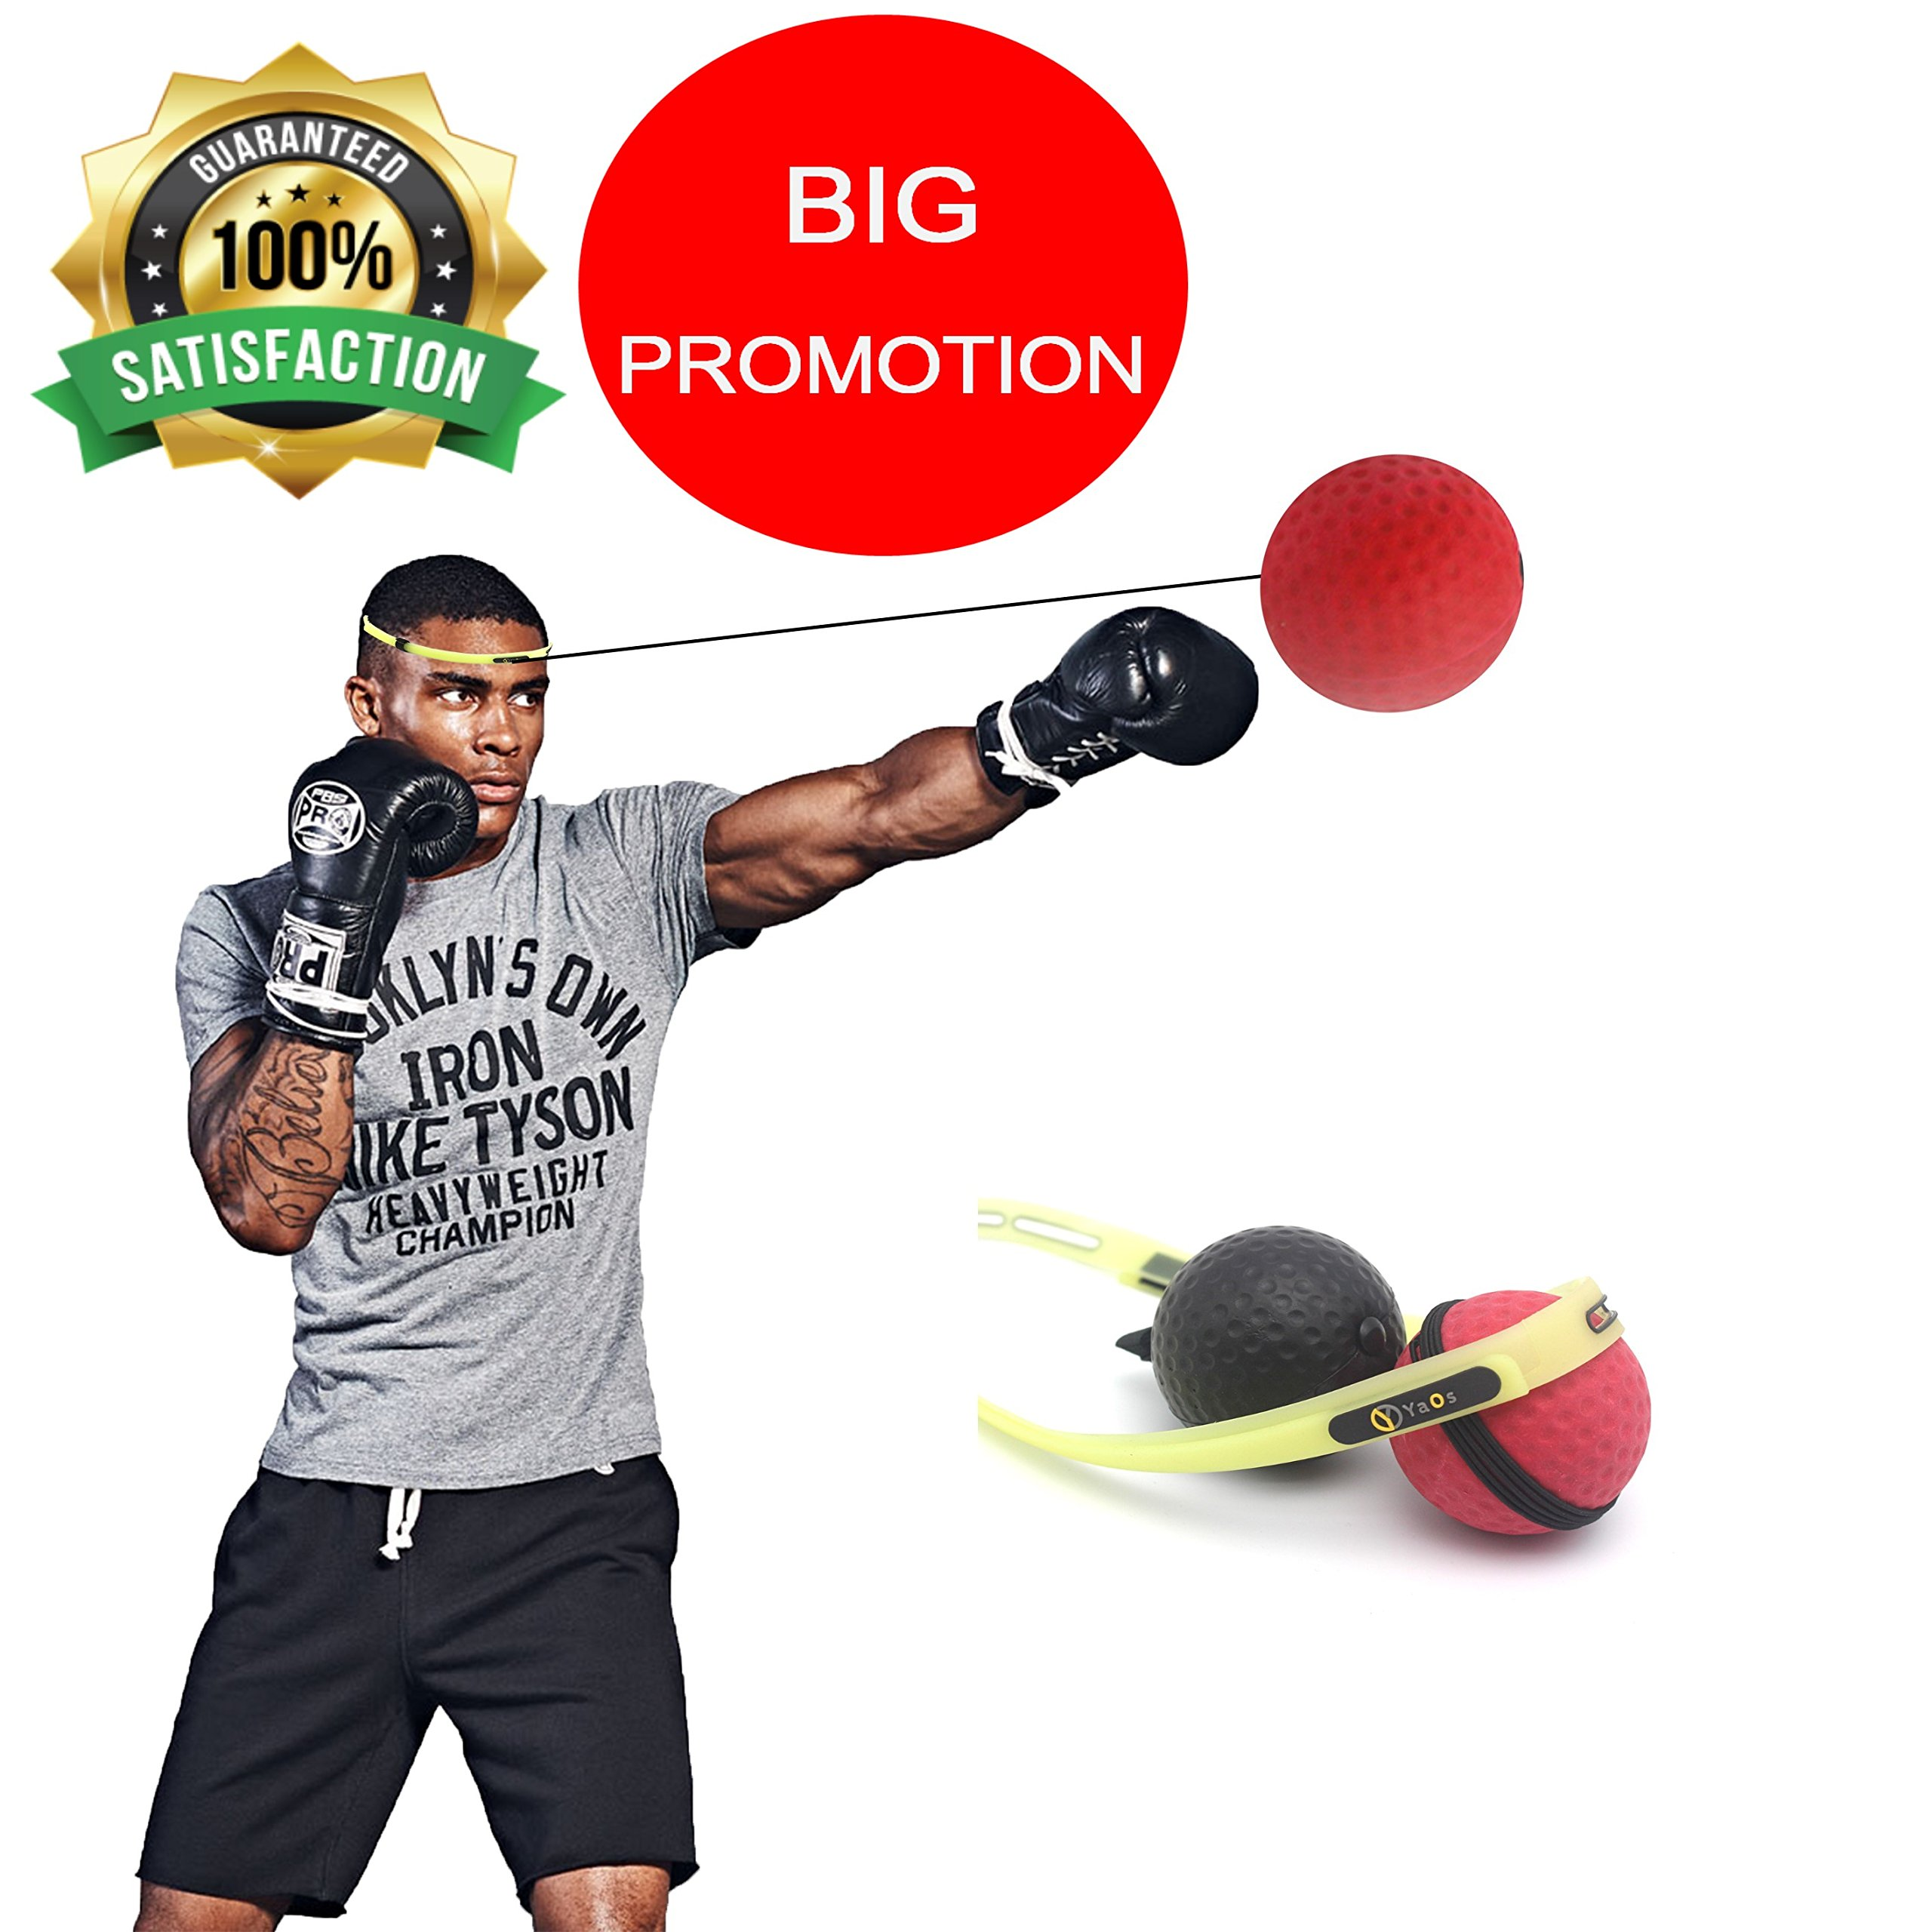 YAOS Boxing Reflex Ball, Light, Soft, High, Unique Improved Headband Technology, 2 Balls, 2 Level Difficulty, Perfect Fitness, Cardio Training Used Professional MMA, UFC Boxing Fighters